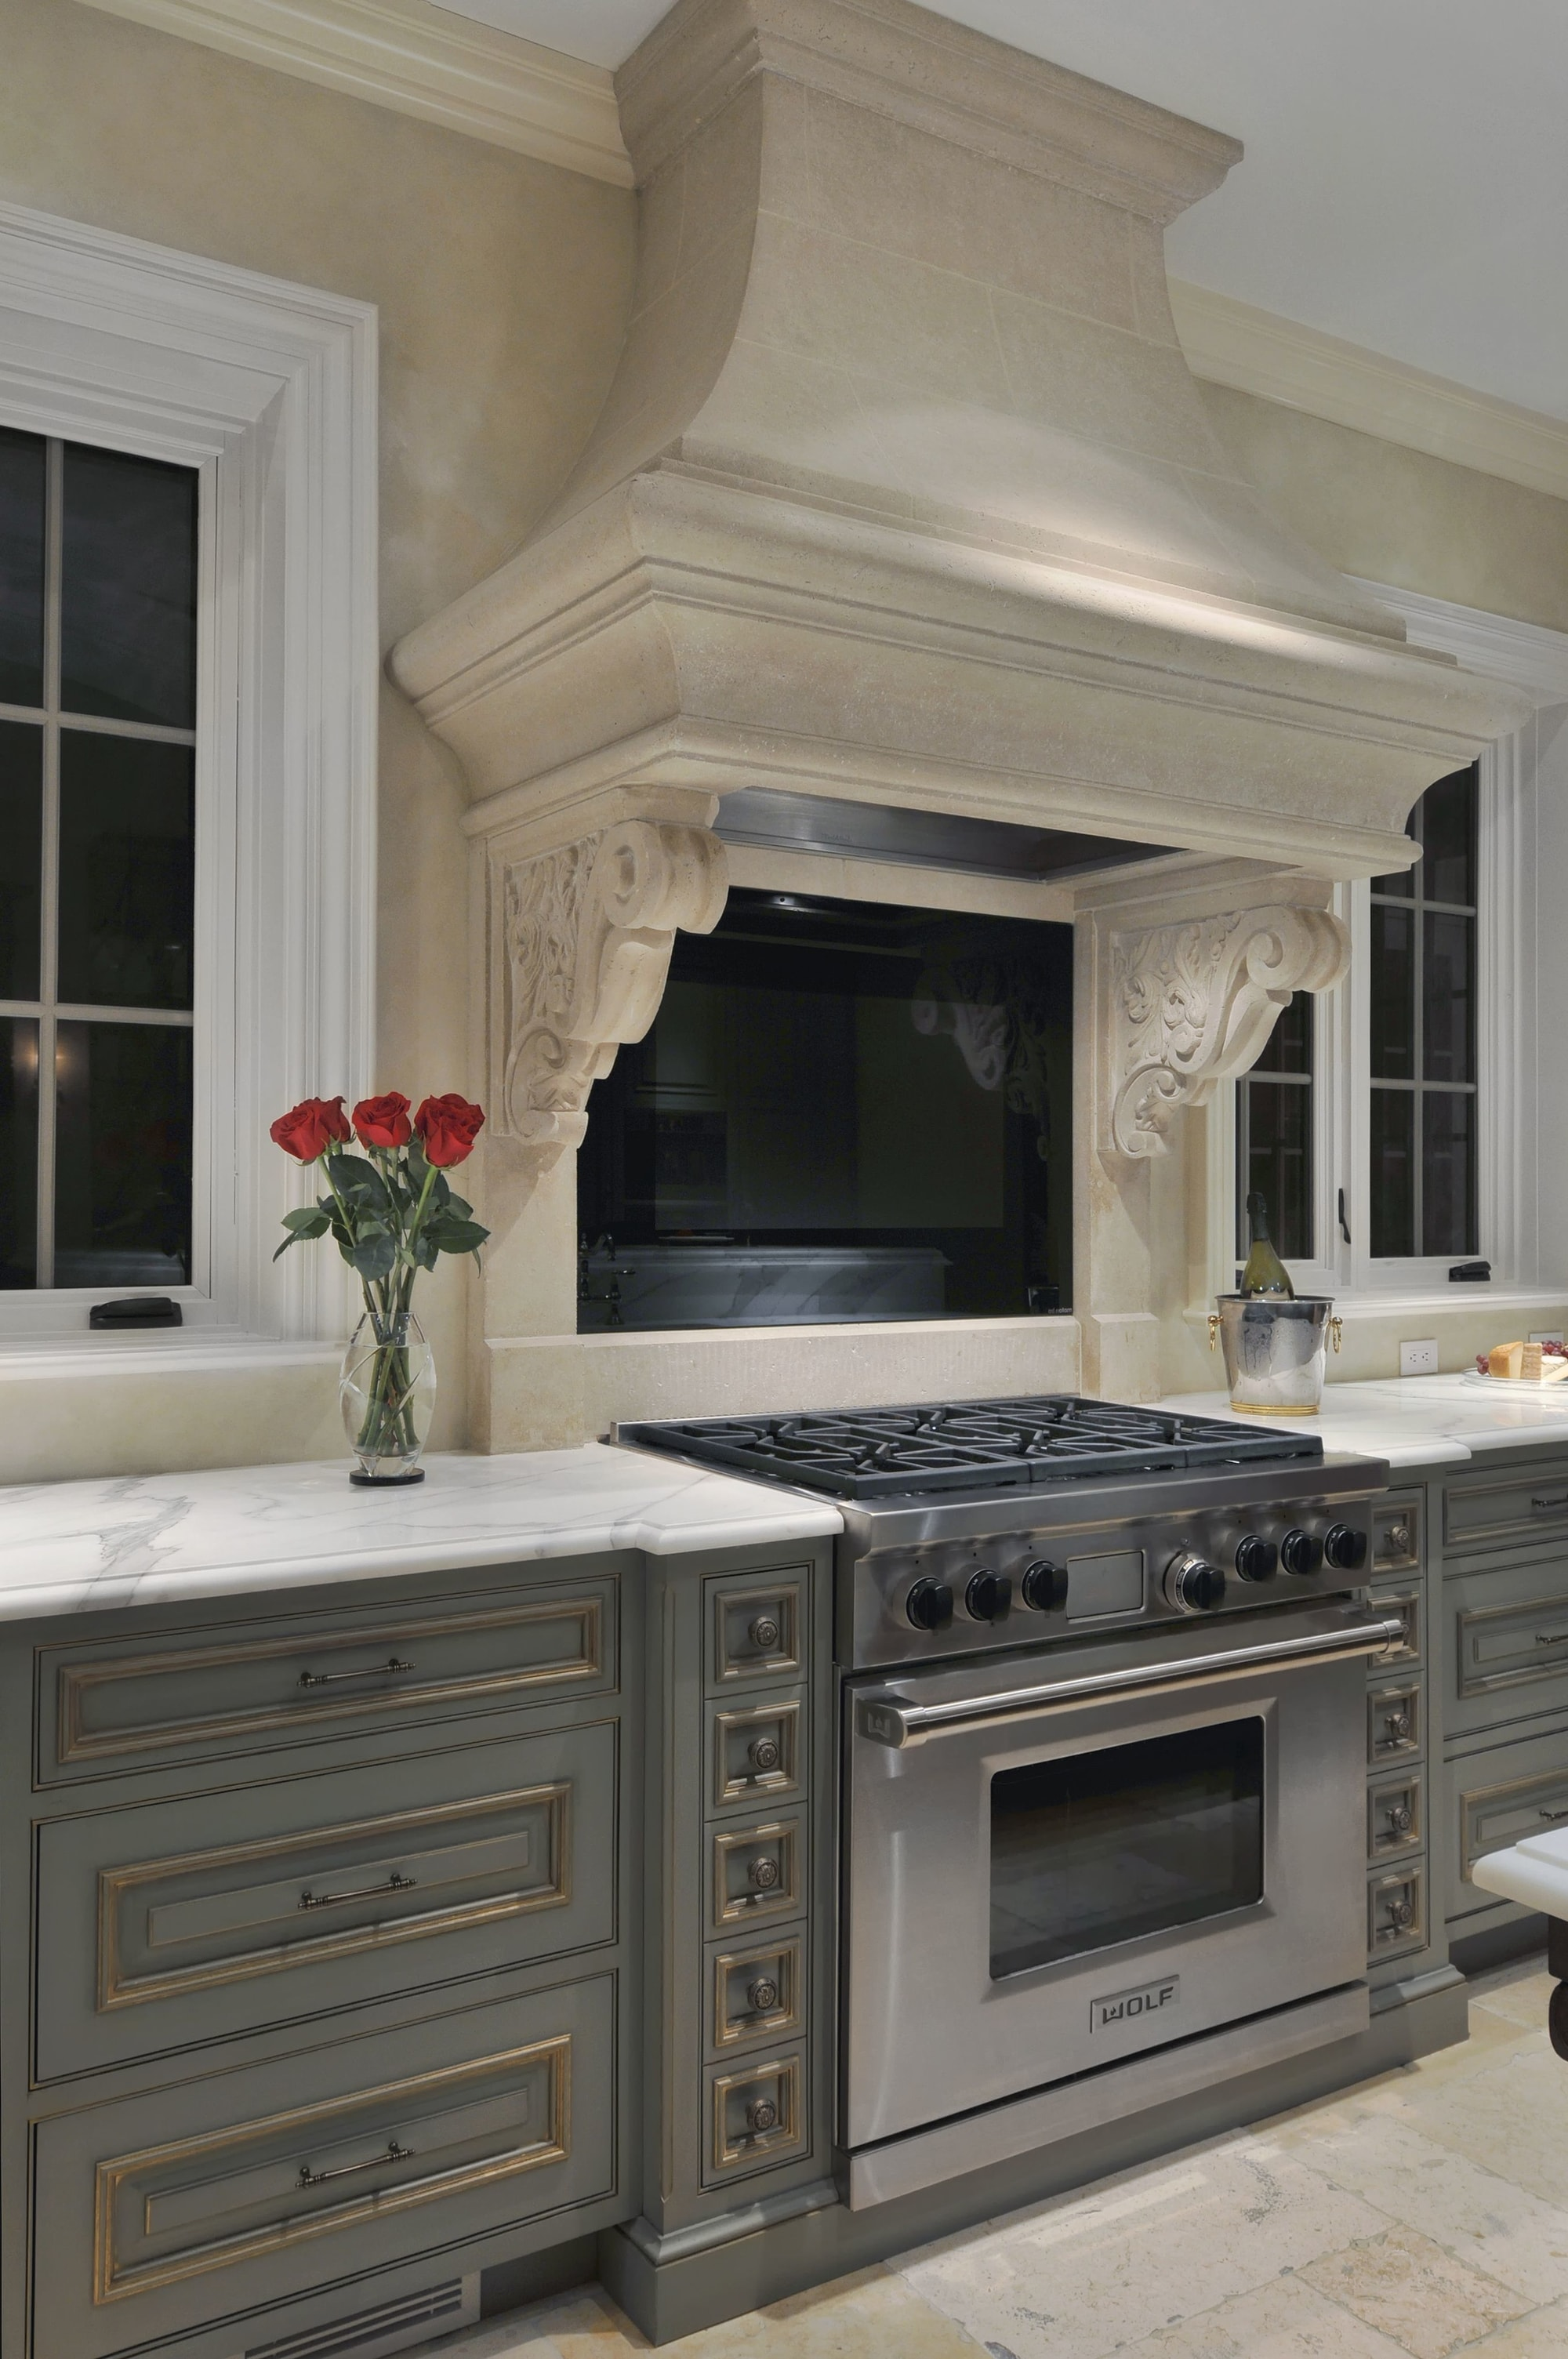 Traditional style kitchen with range oven and hood range